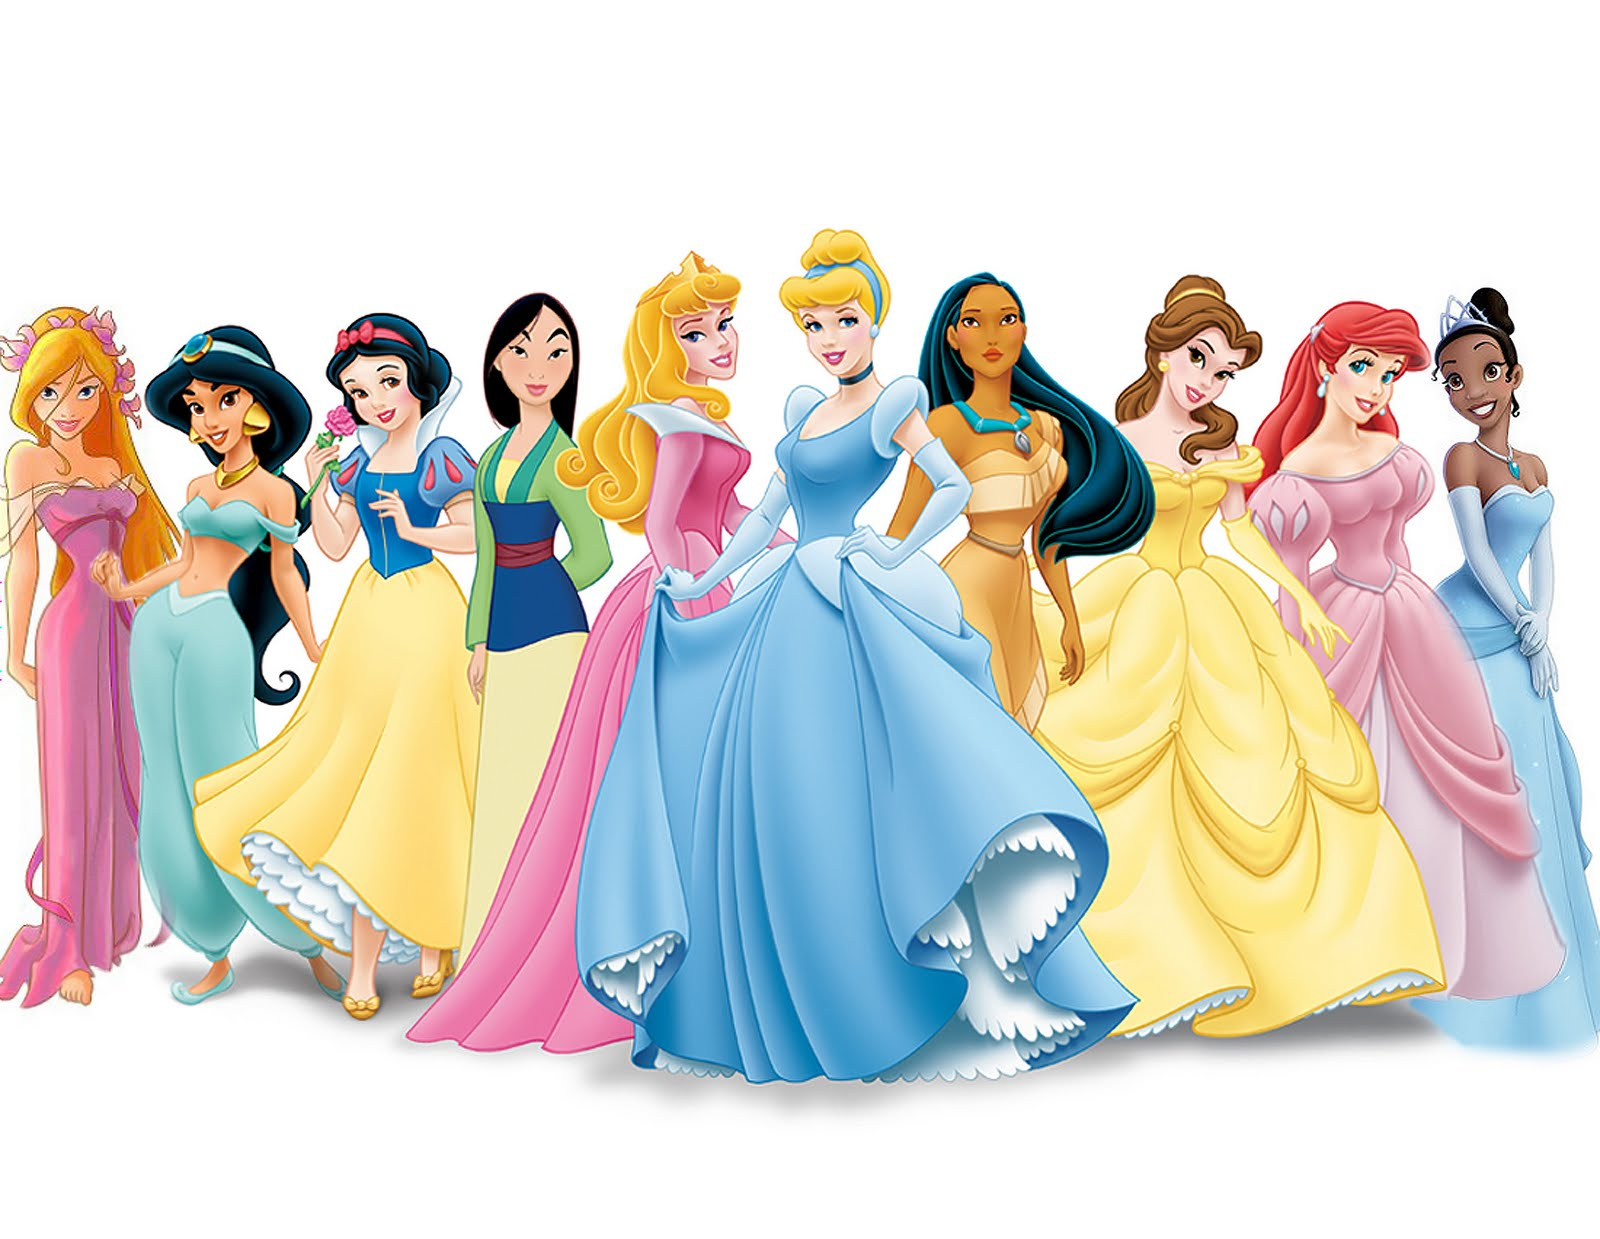 Disney Princesses Wallpaper Disney Desktop Wallpaper 1600x1239